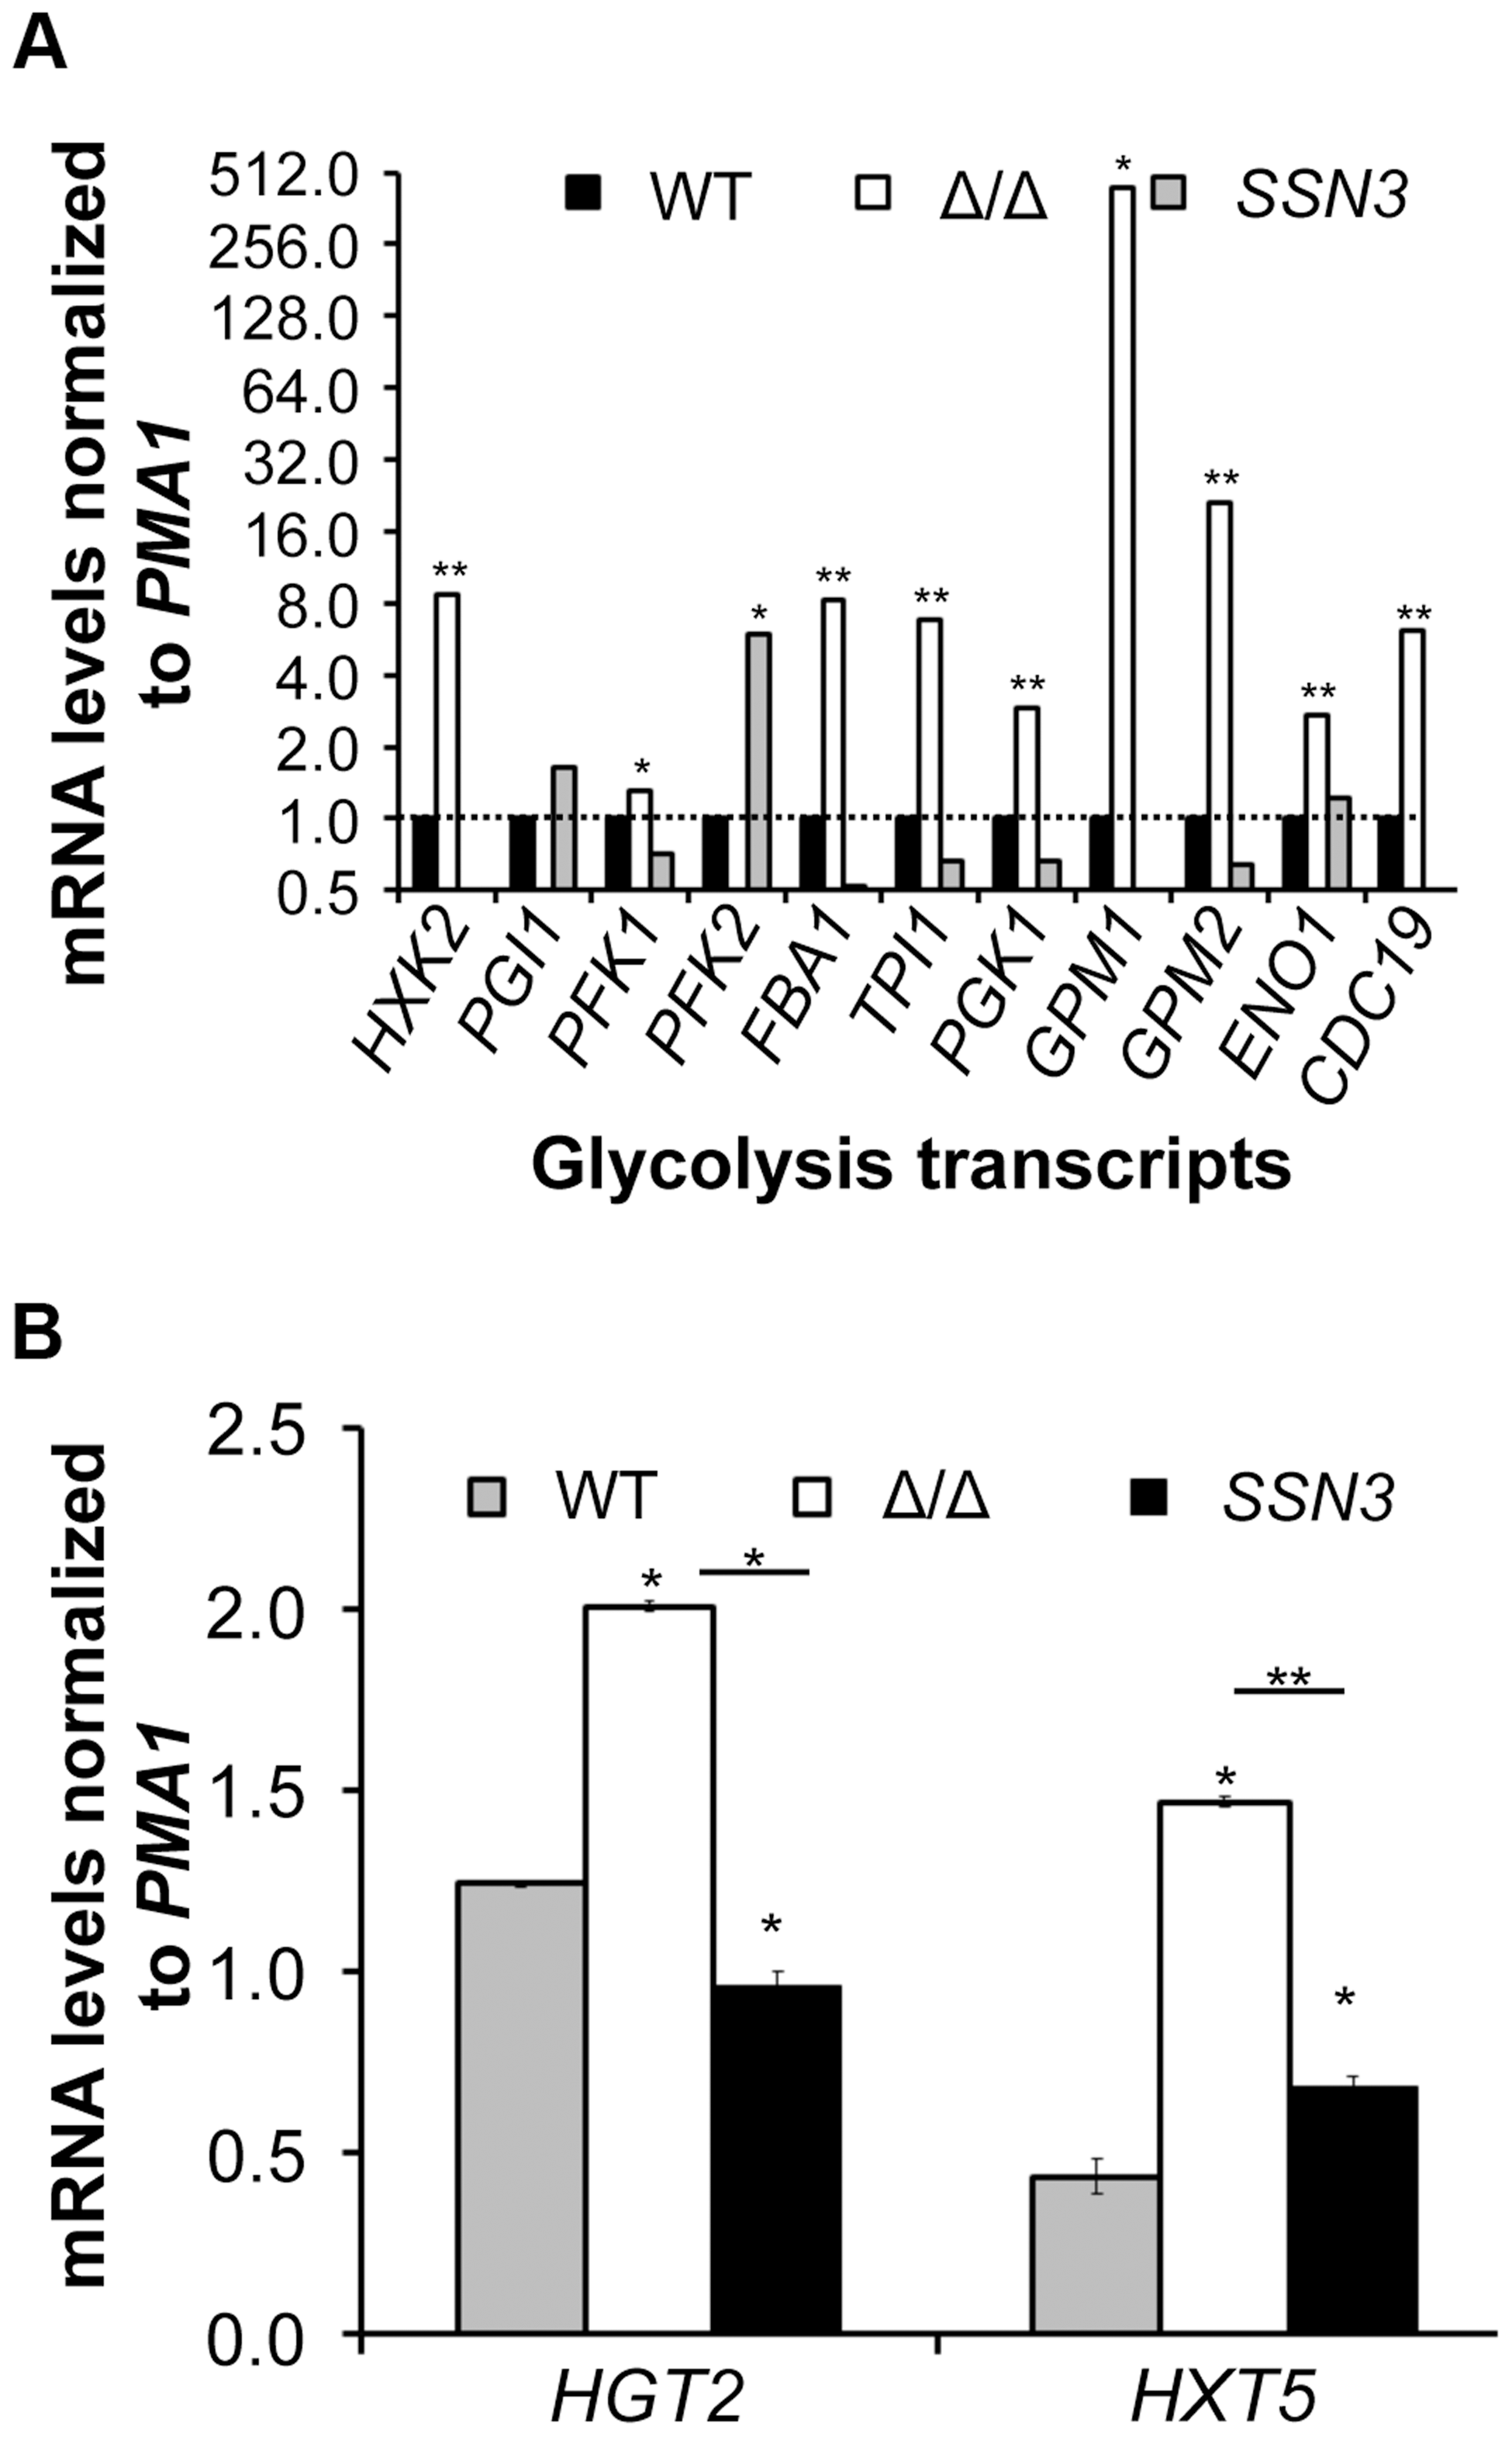 Loss of <i>SSN3</i> results in increased expression of glycolysis genes and glucose transporters.